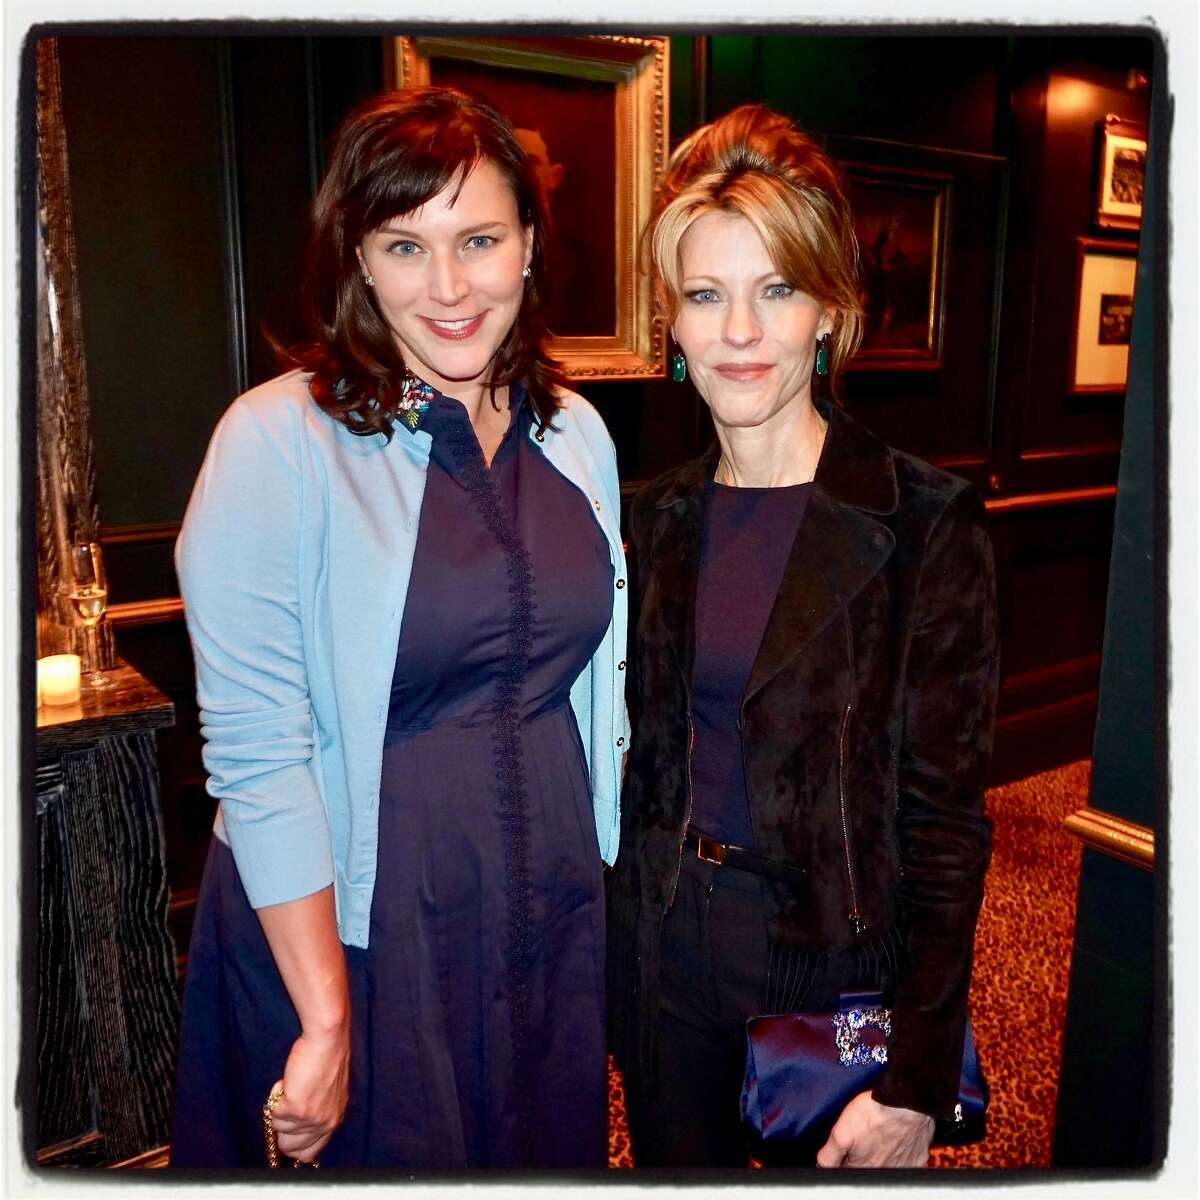 Chronicle Editor Audrey Cooper (left) and Elle Magazine editor Robbie Myers at Wayfare Tavern. July 12, 2017.